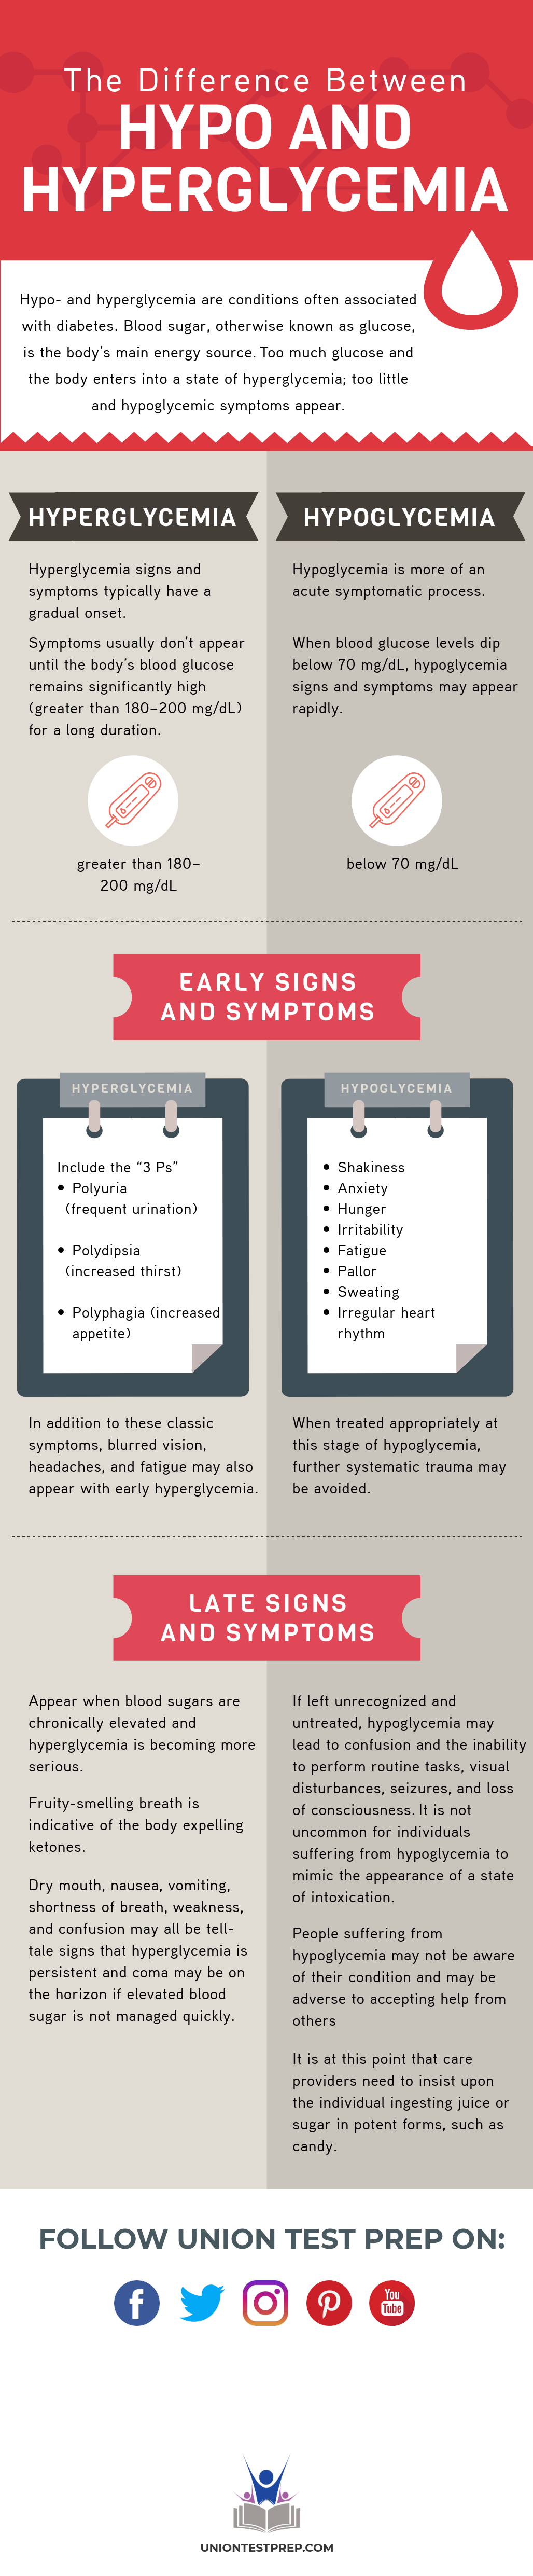 Symptoms of Hypo and Hyperglycemia